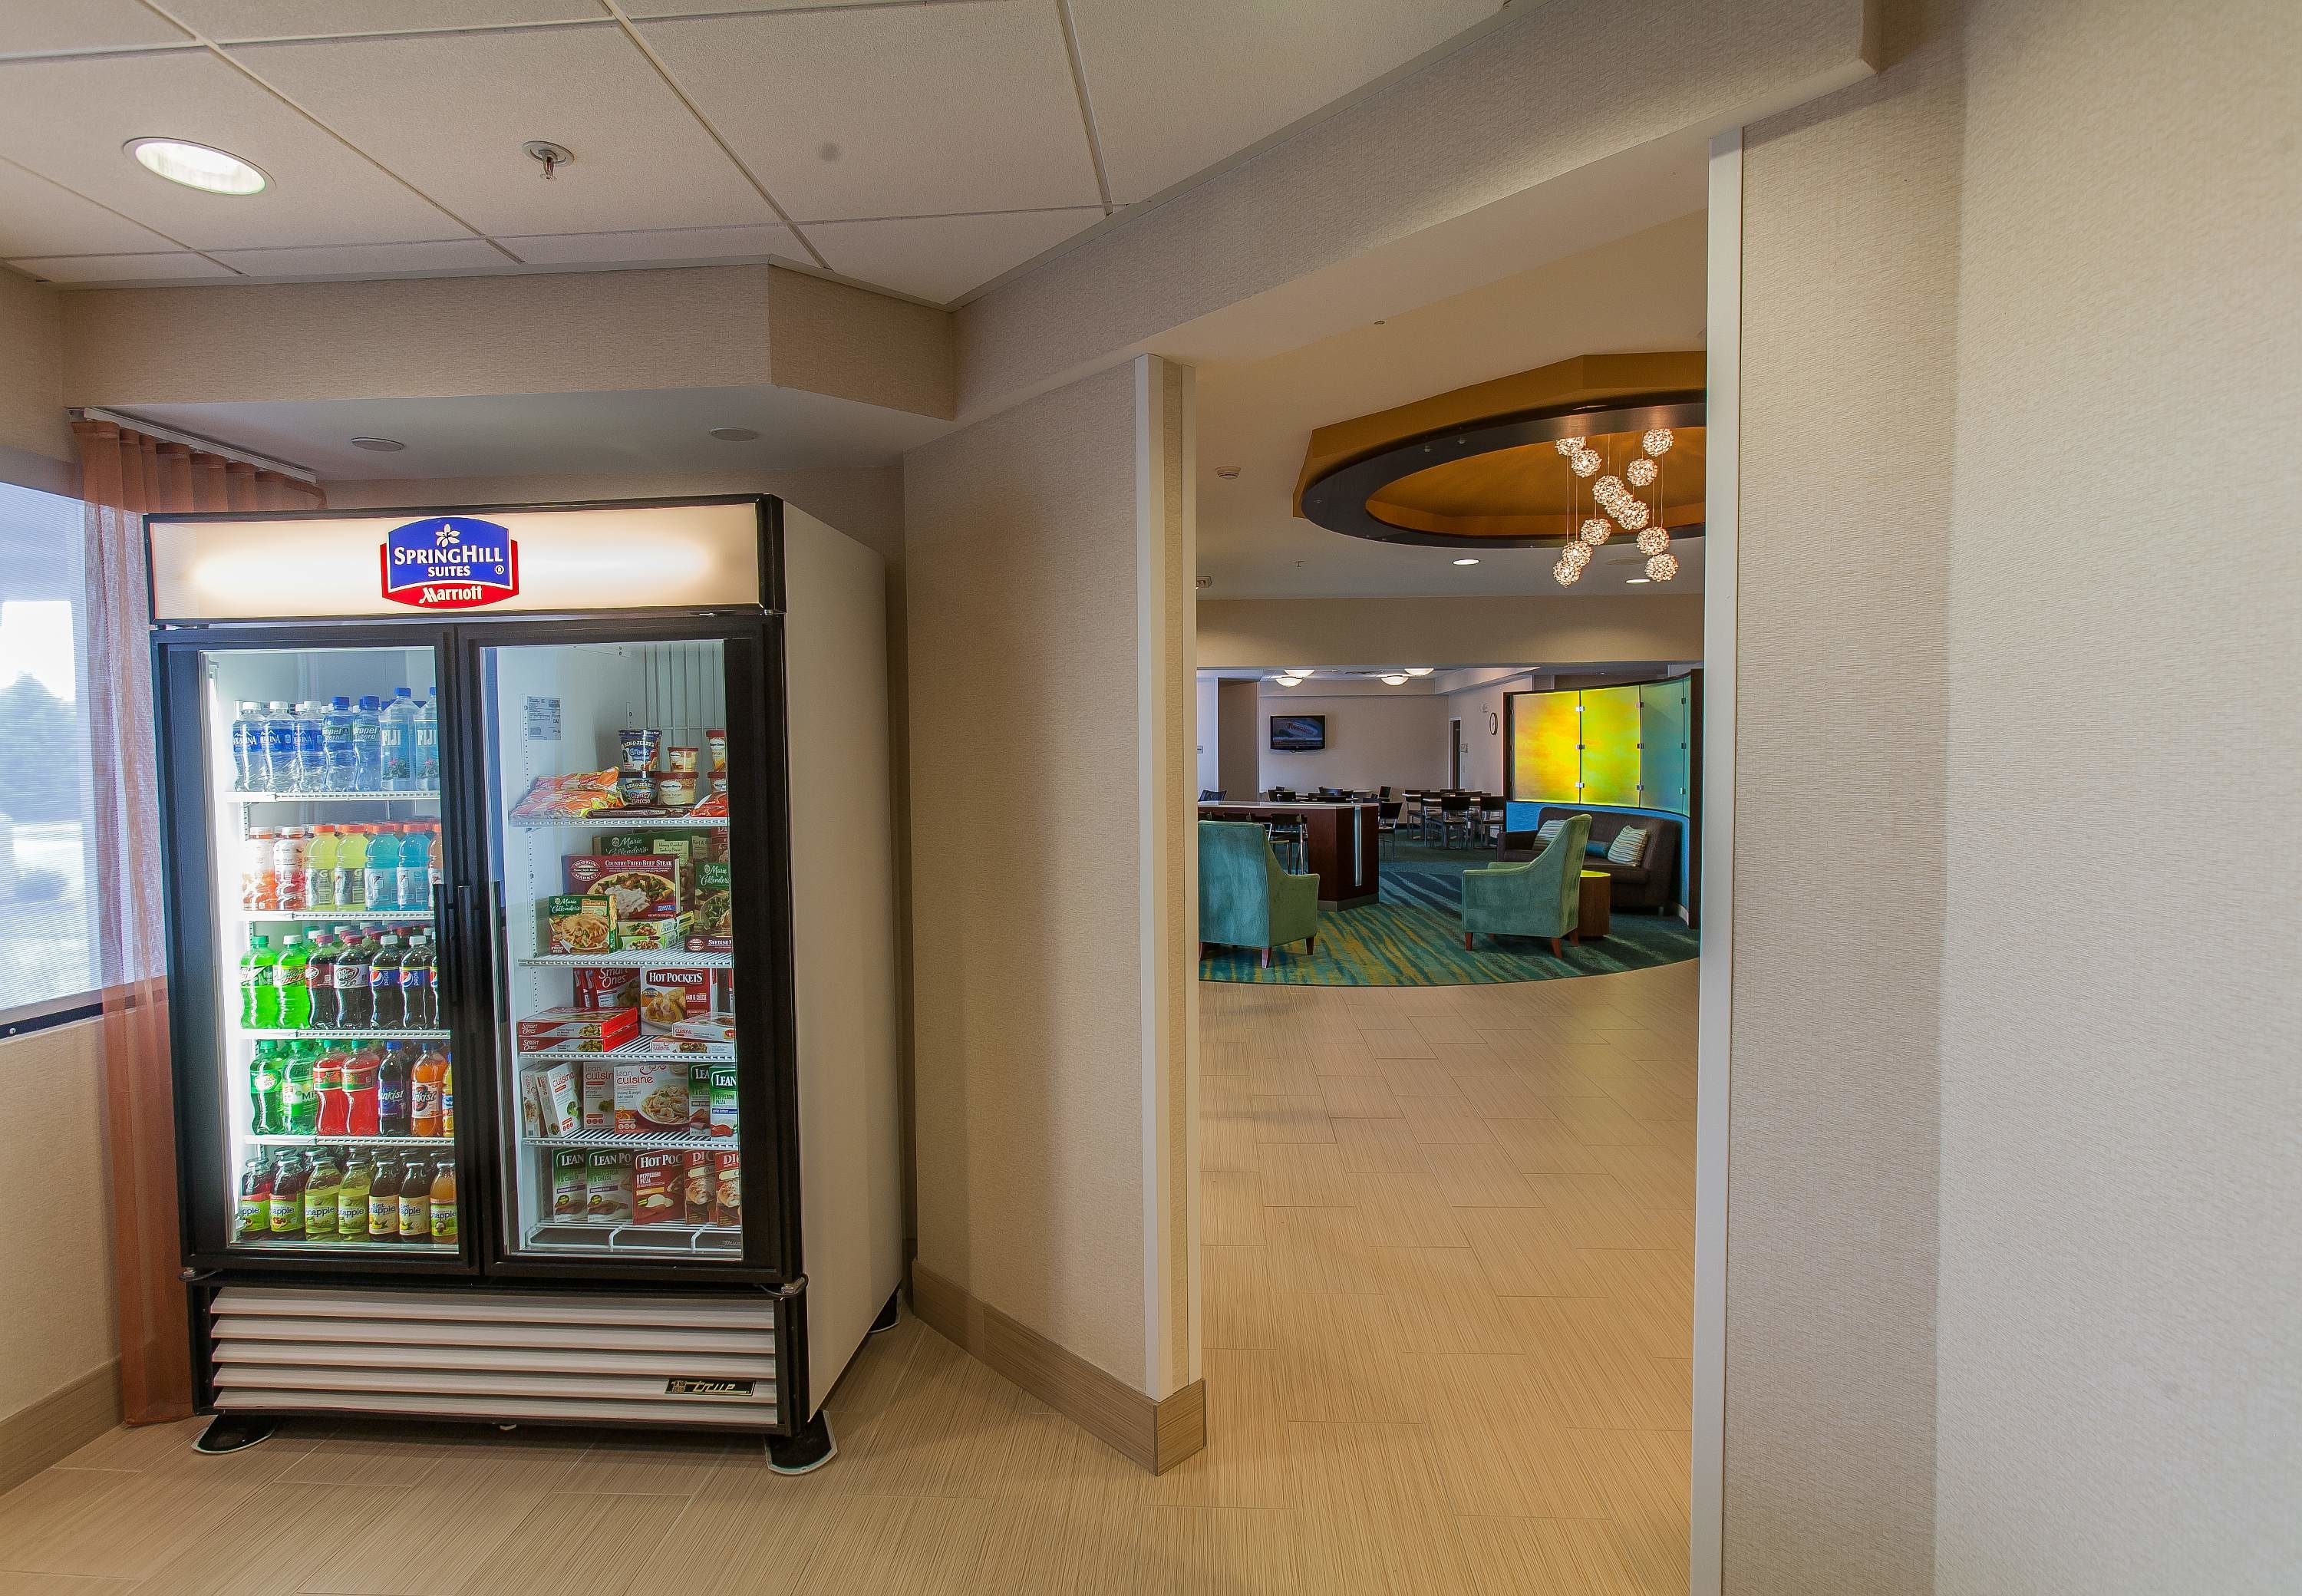 SpringHill Suites by Marriott Florence image 14